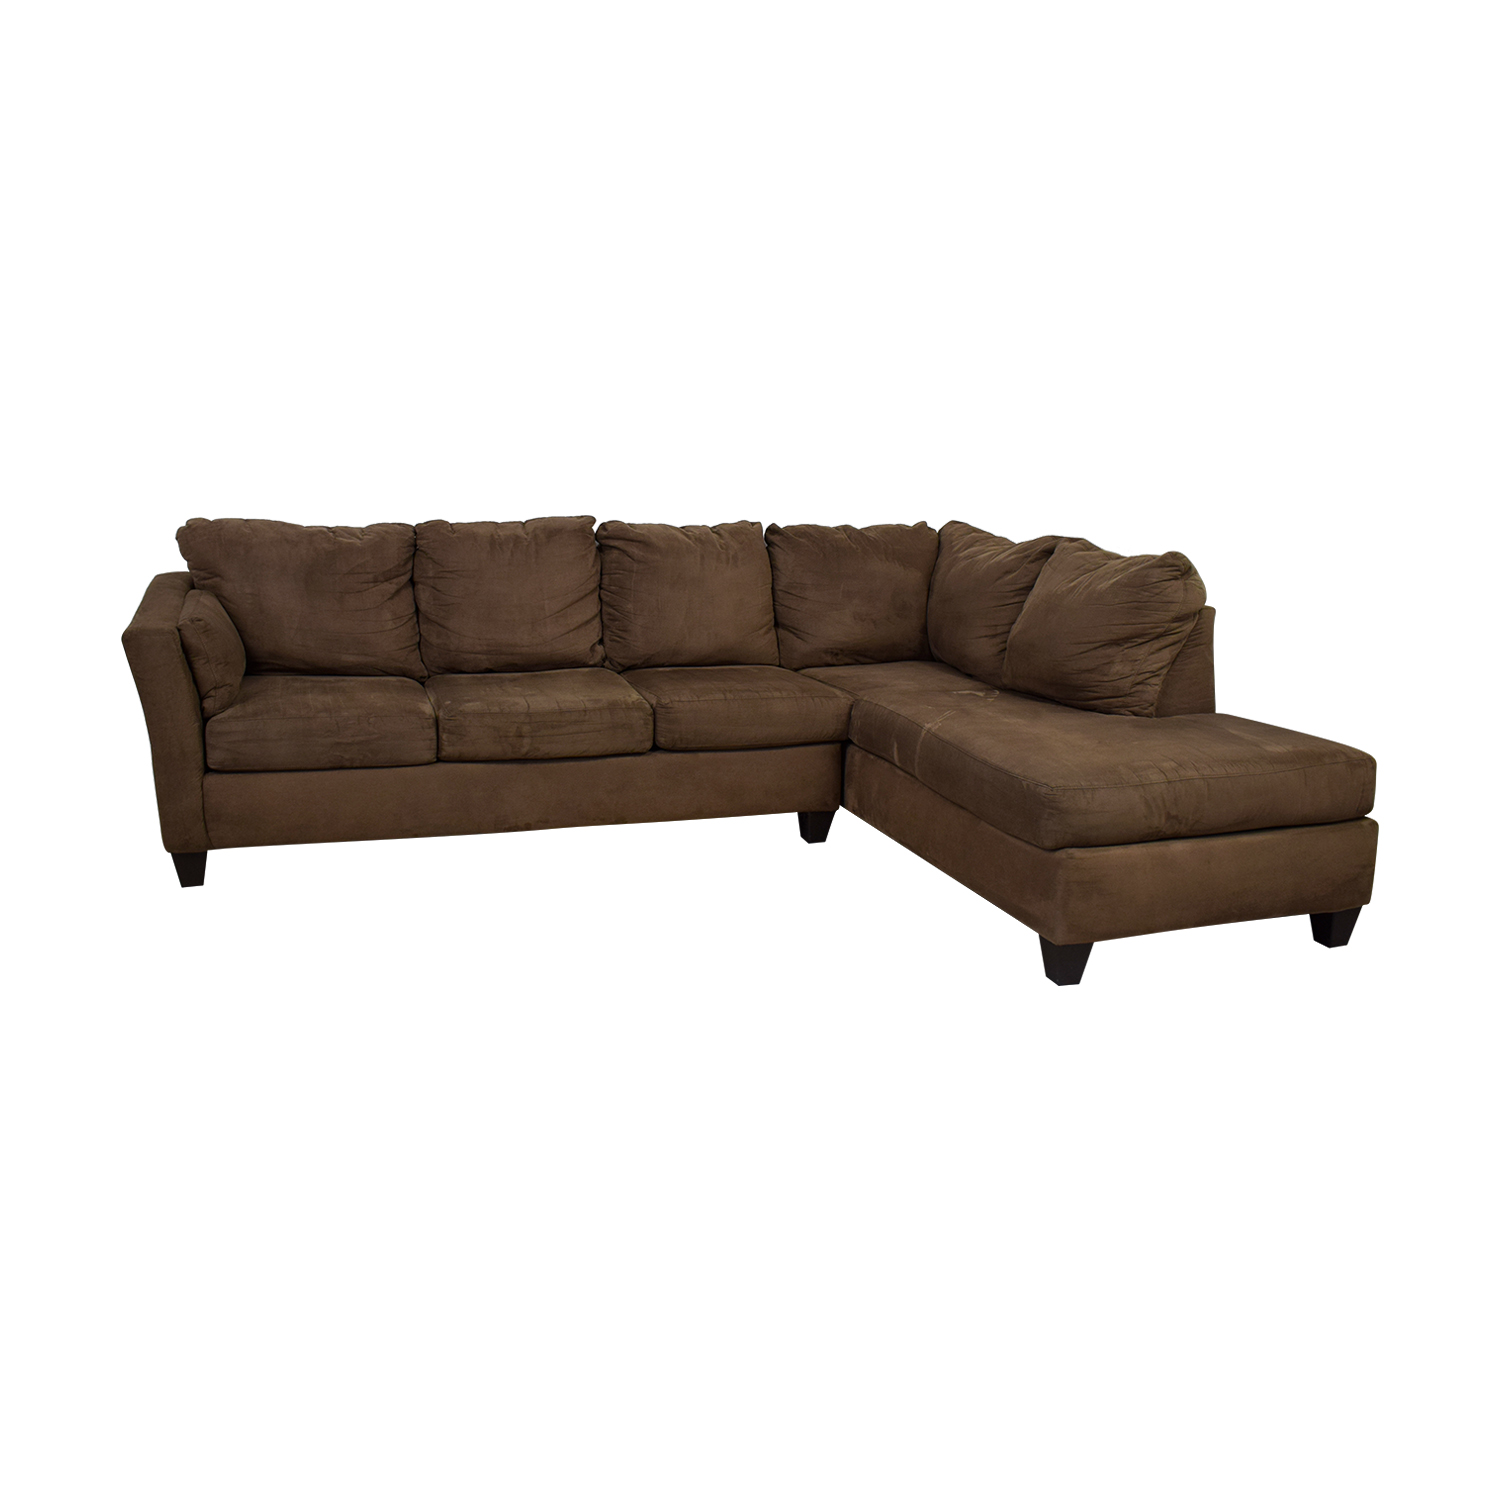 Bob's Furniture Libre II Brown L-Shaped Chaise Sectional / Sofas